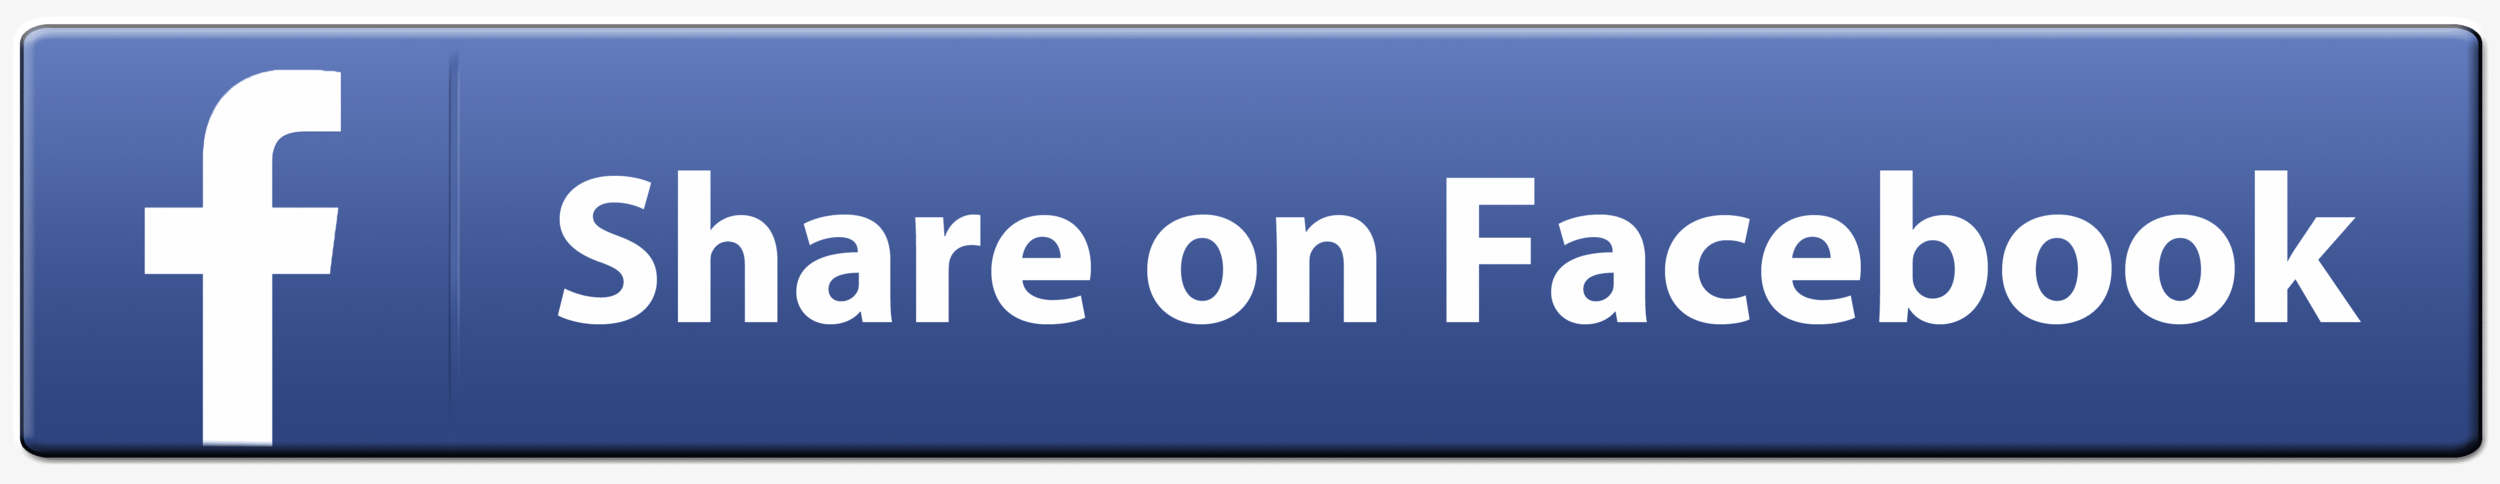 New-Facebook-share-button.png